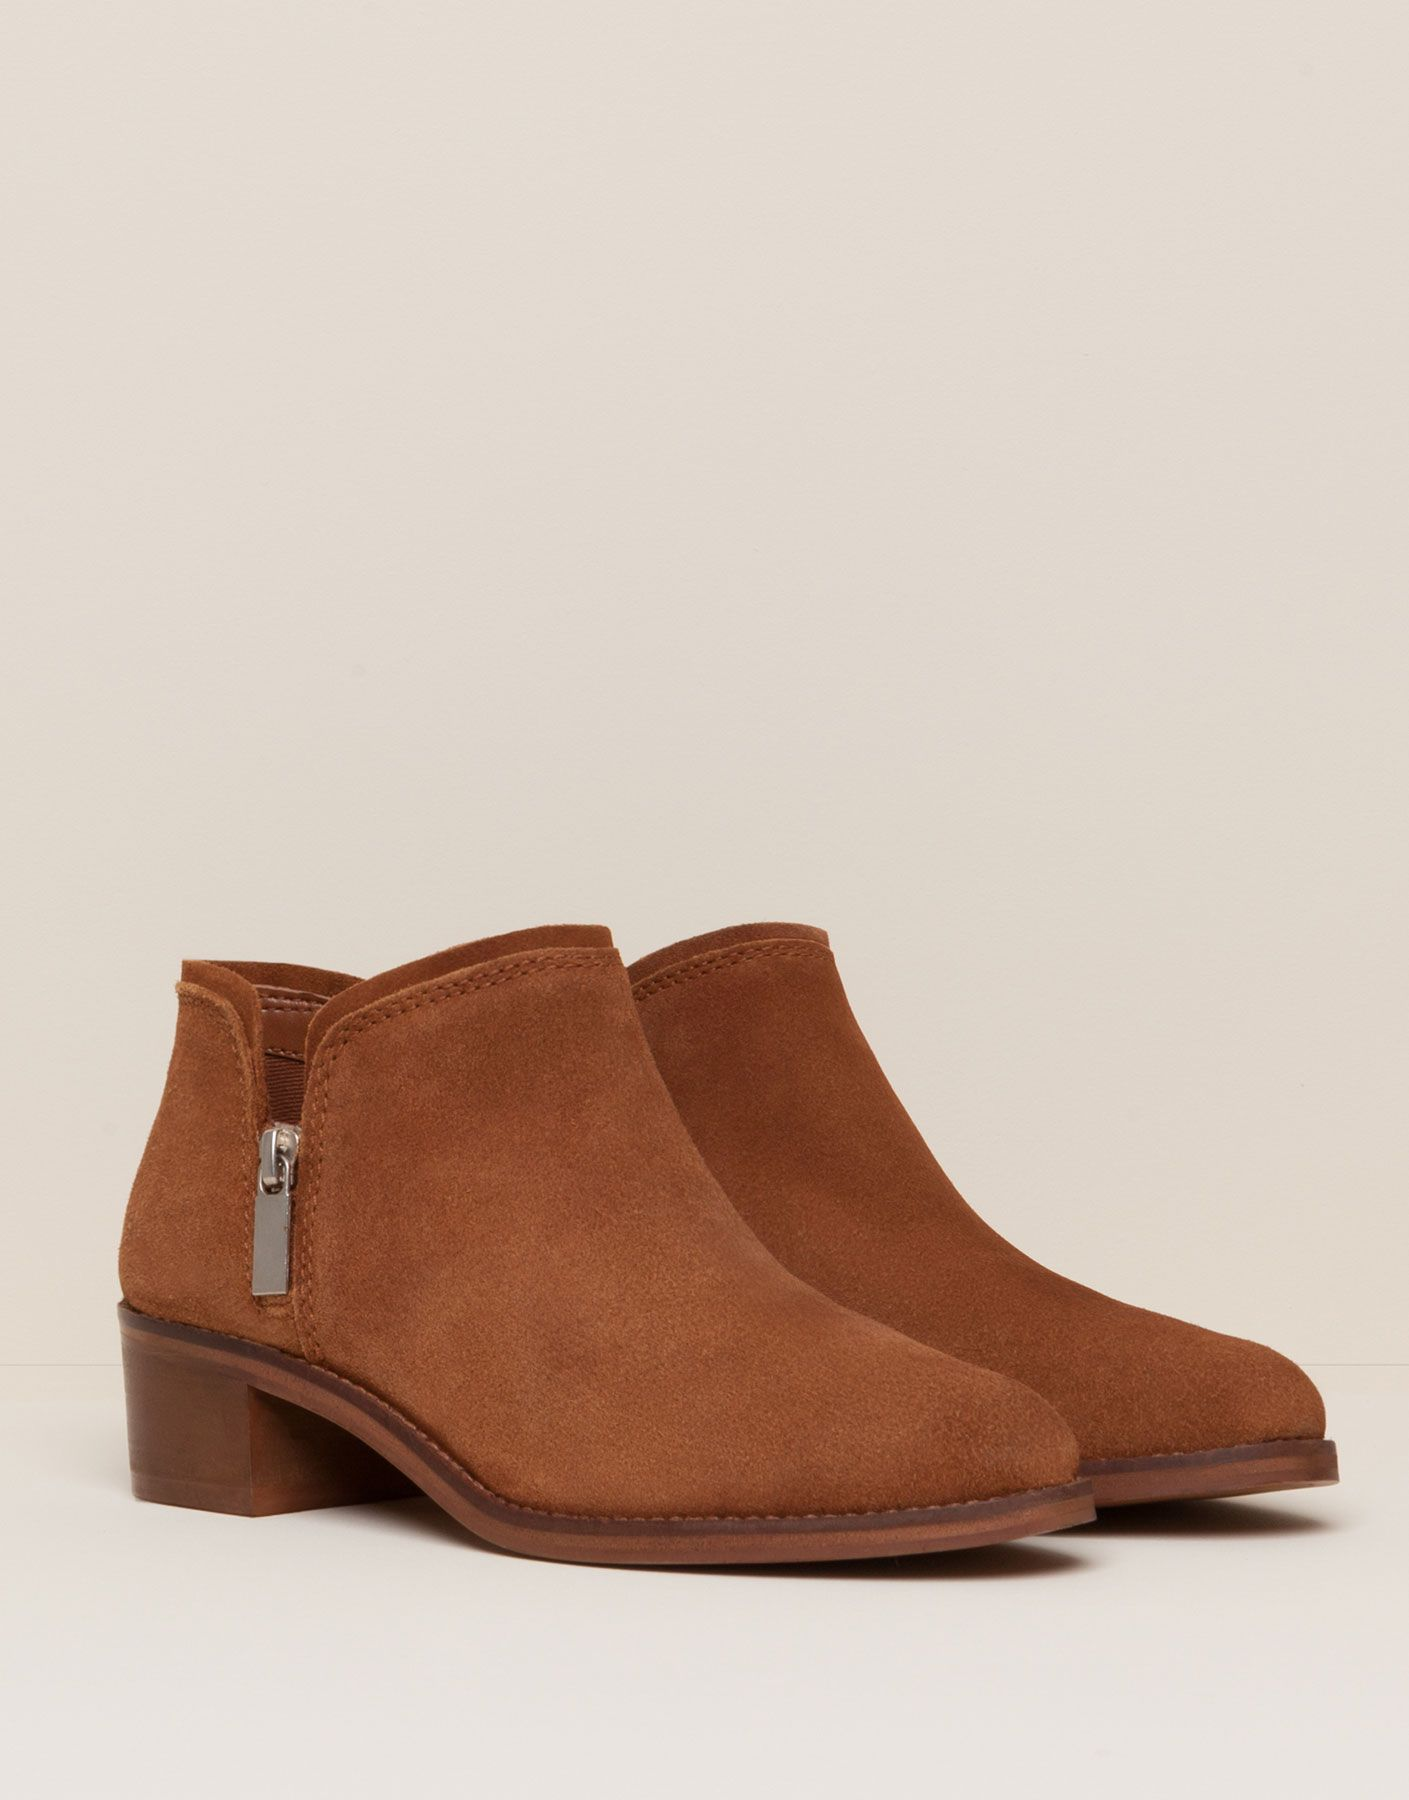 d26cc0d042f78 BOTÍN PIEL SERRAJE CASUAL - ZAPATOS MUJER - MUJER - PULL BEAR Colombia